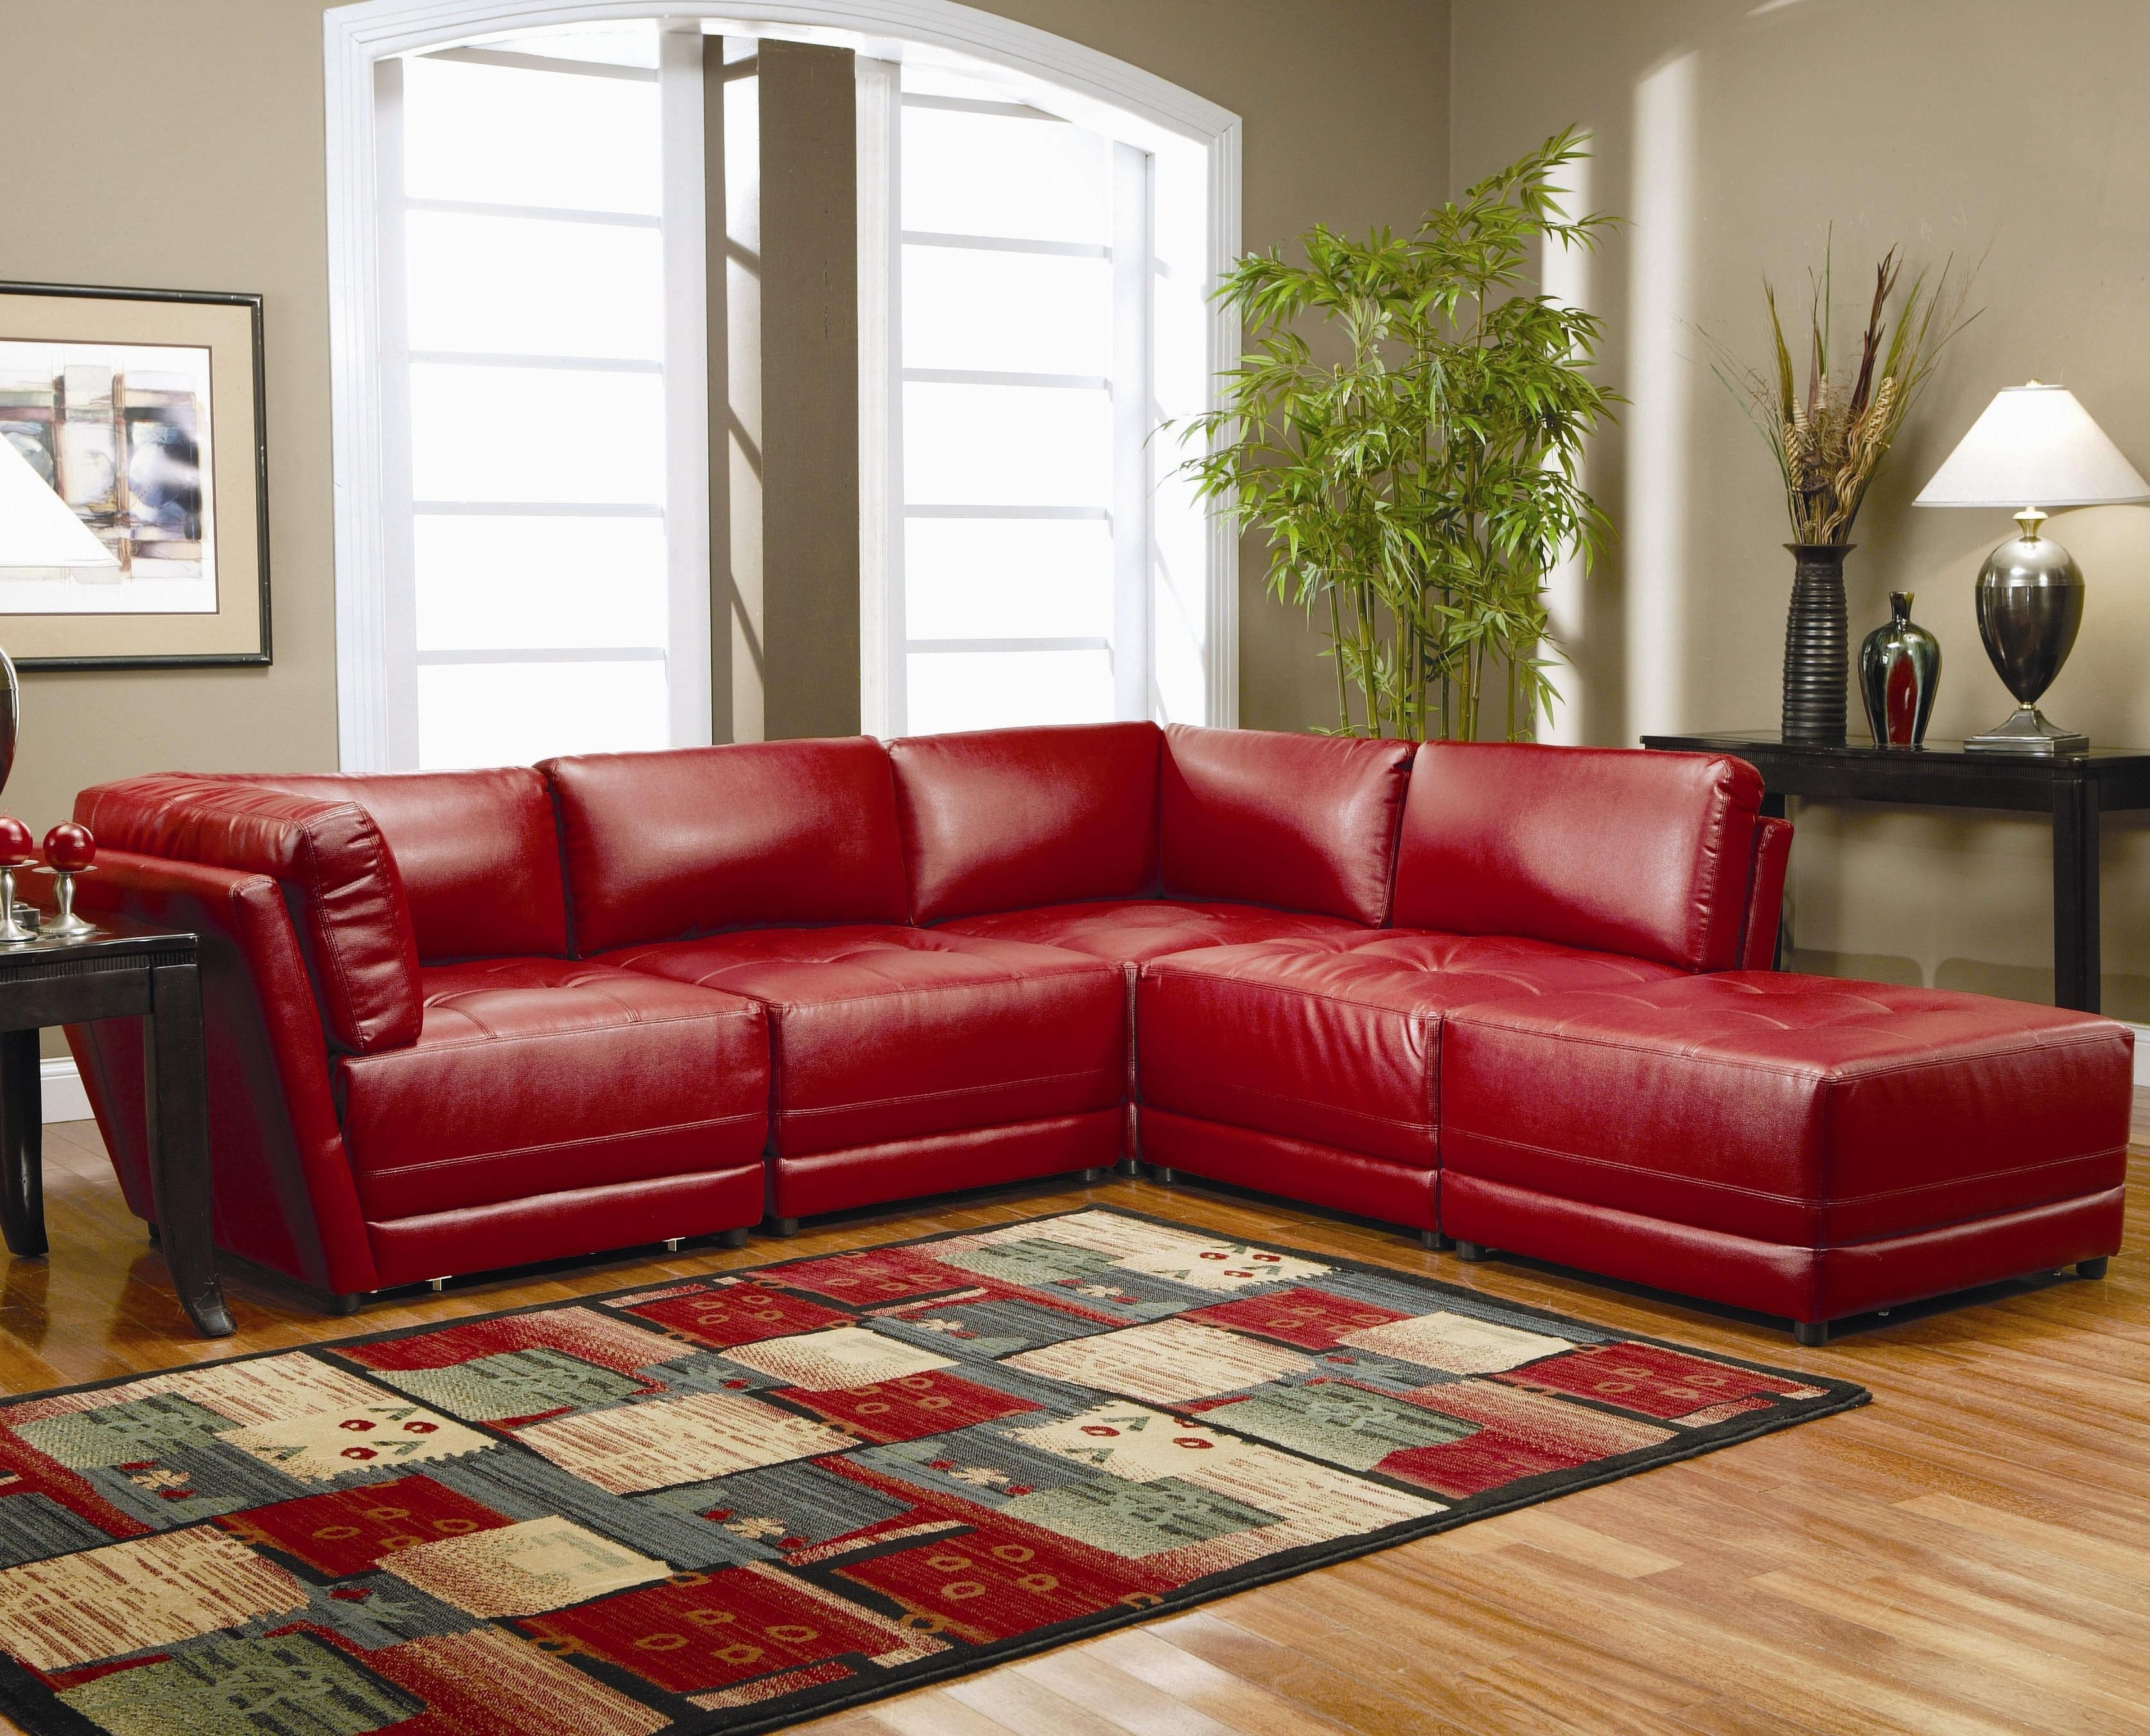 Red Leather Sectional Sofa Sale – Hotelsbacau Within Red Leather Sectional Couches (View 6 of 10)